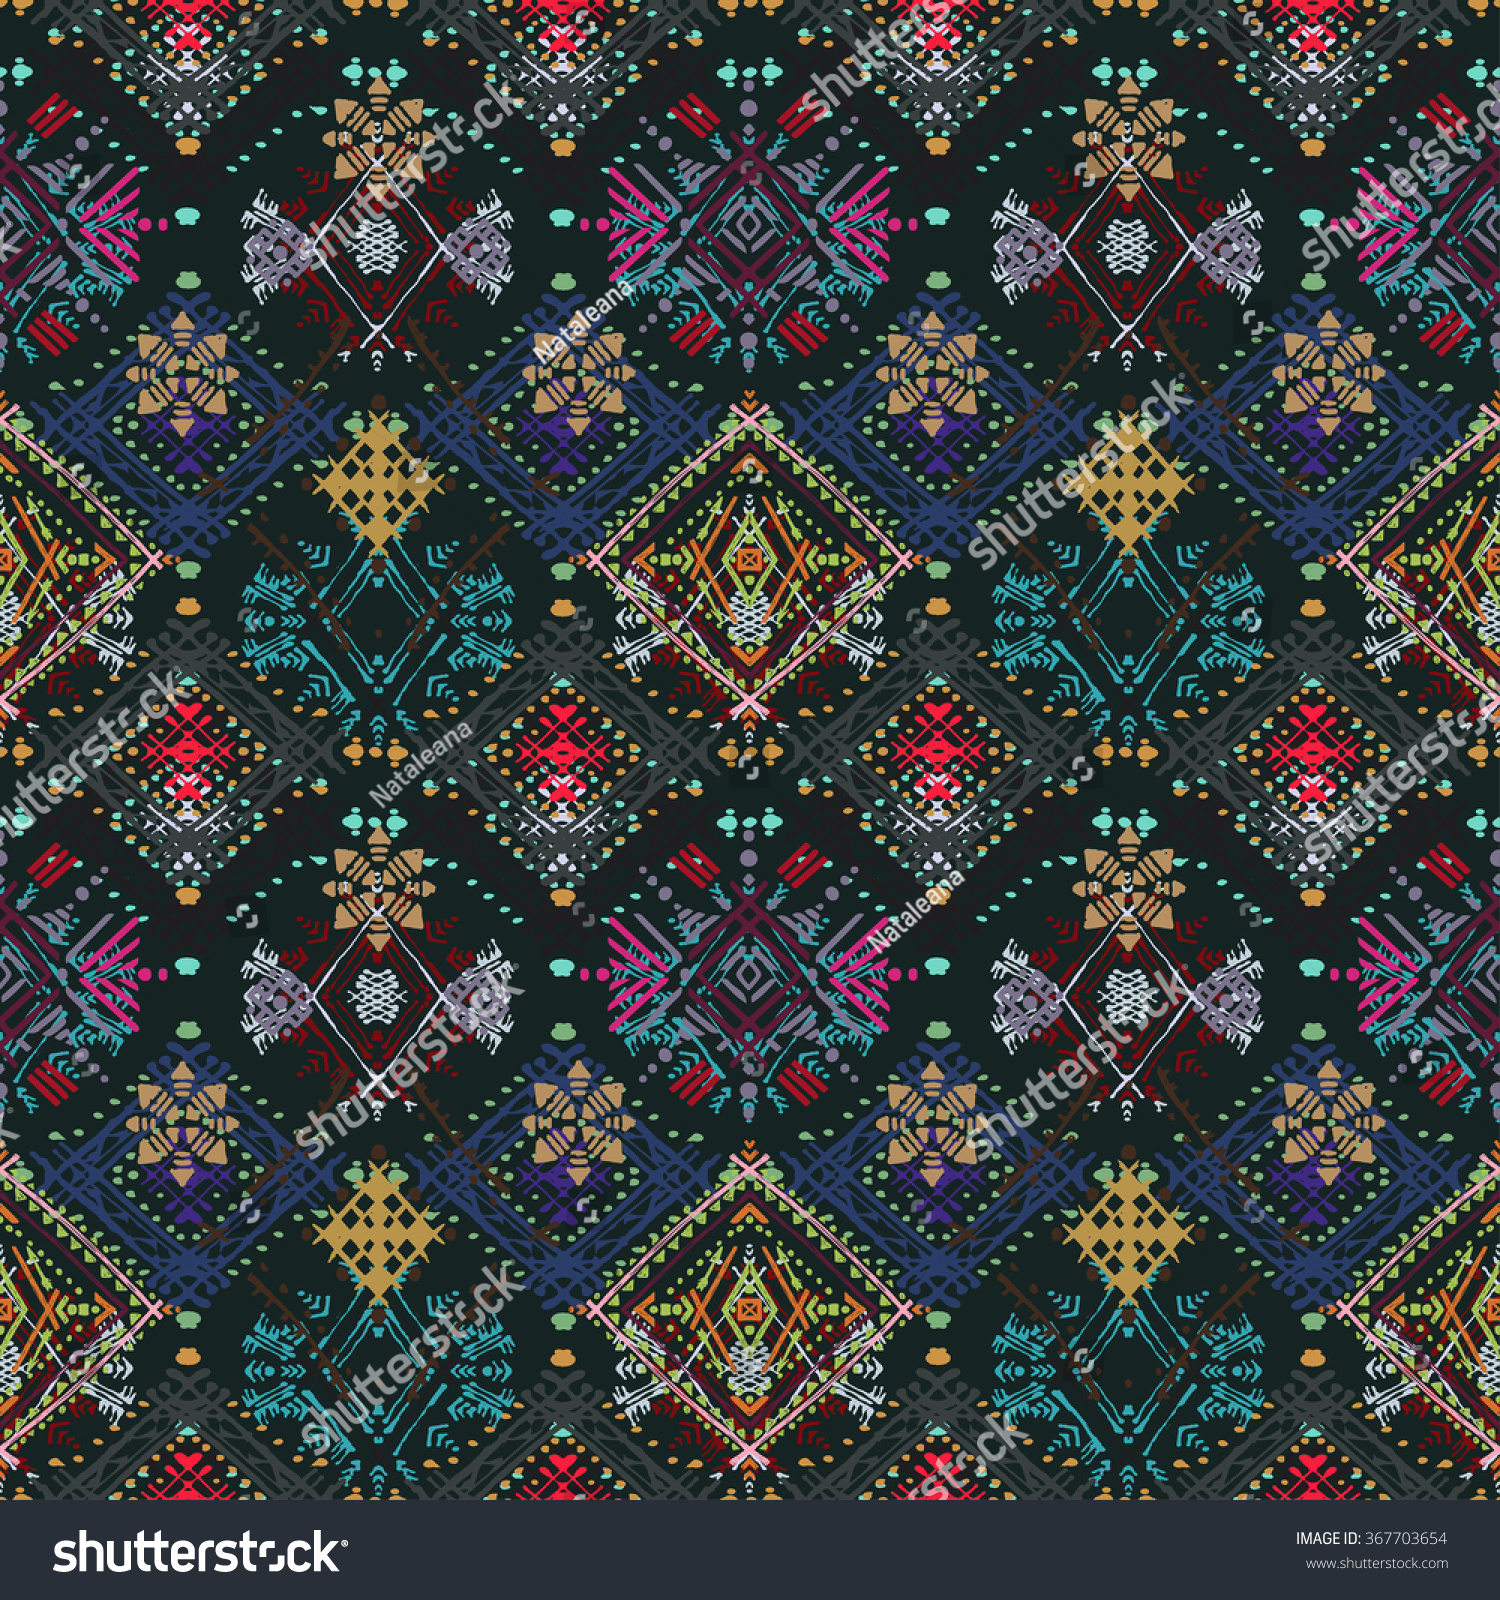 Abstract ethnic seamless pattern Tribal art boho print hand drawn vintage ornament Background texture wallpaper wrapping